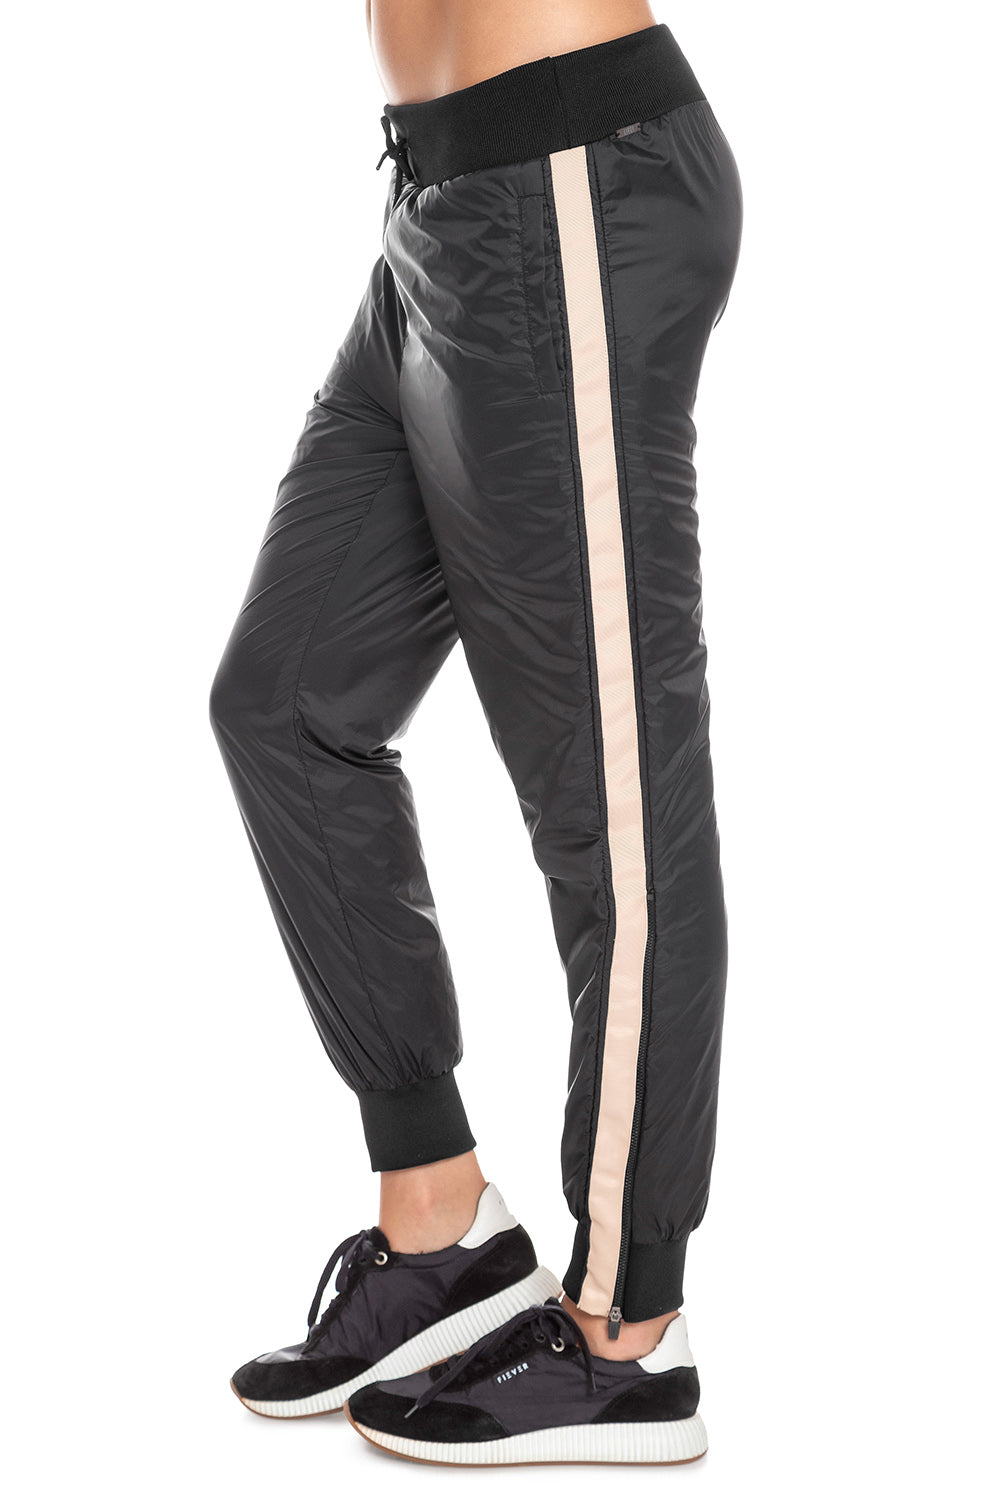 Purpose Track Pants